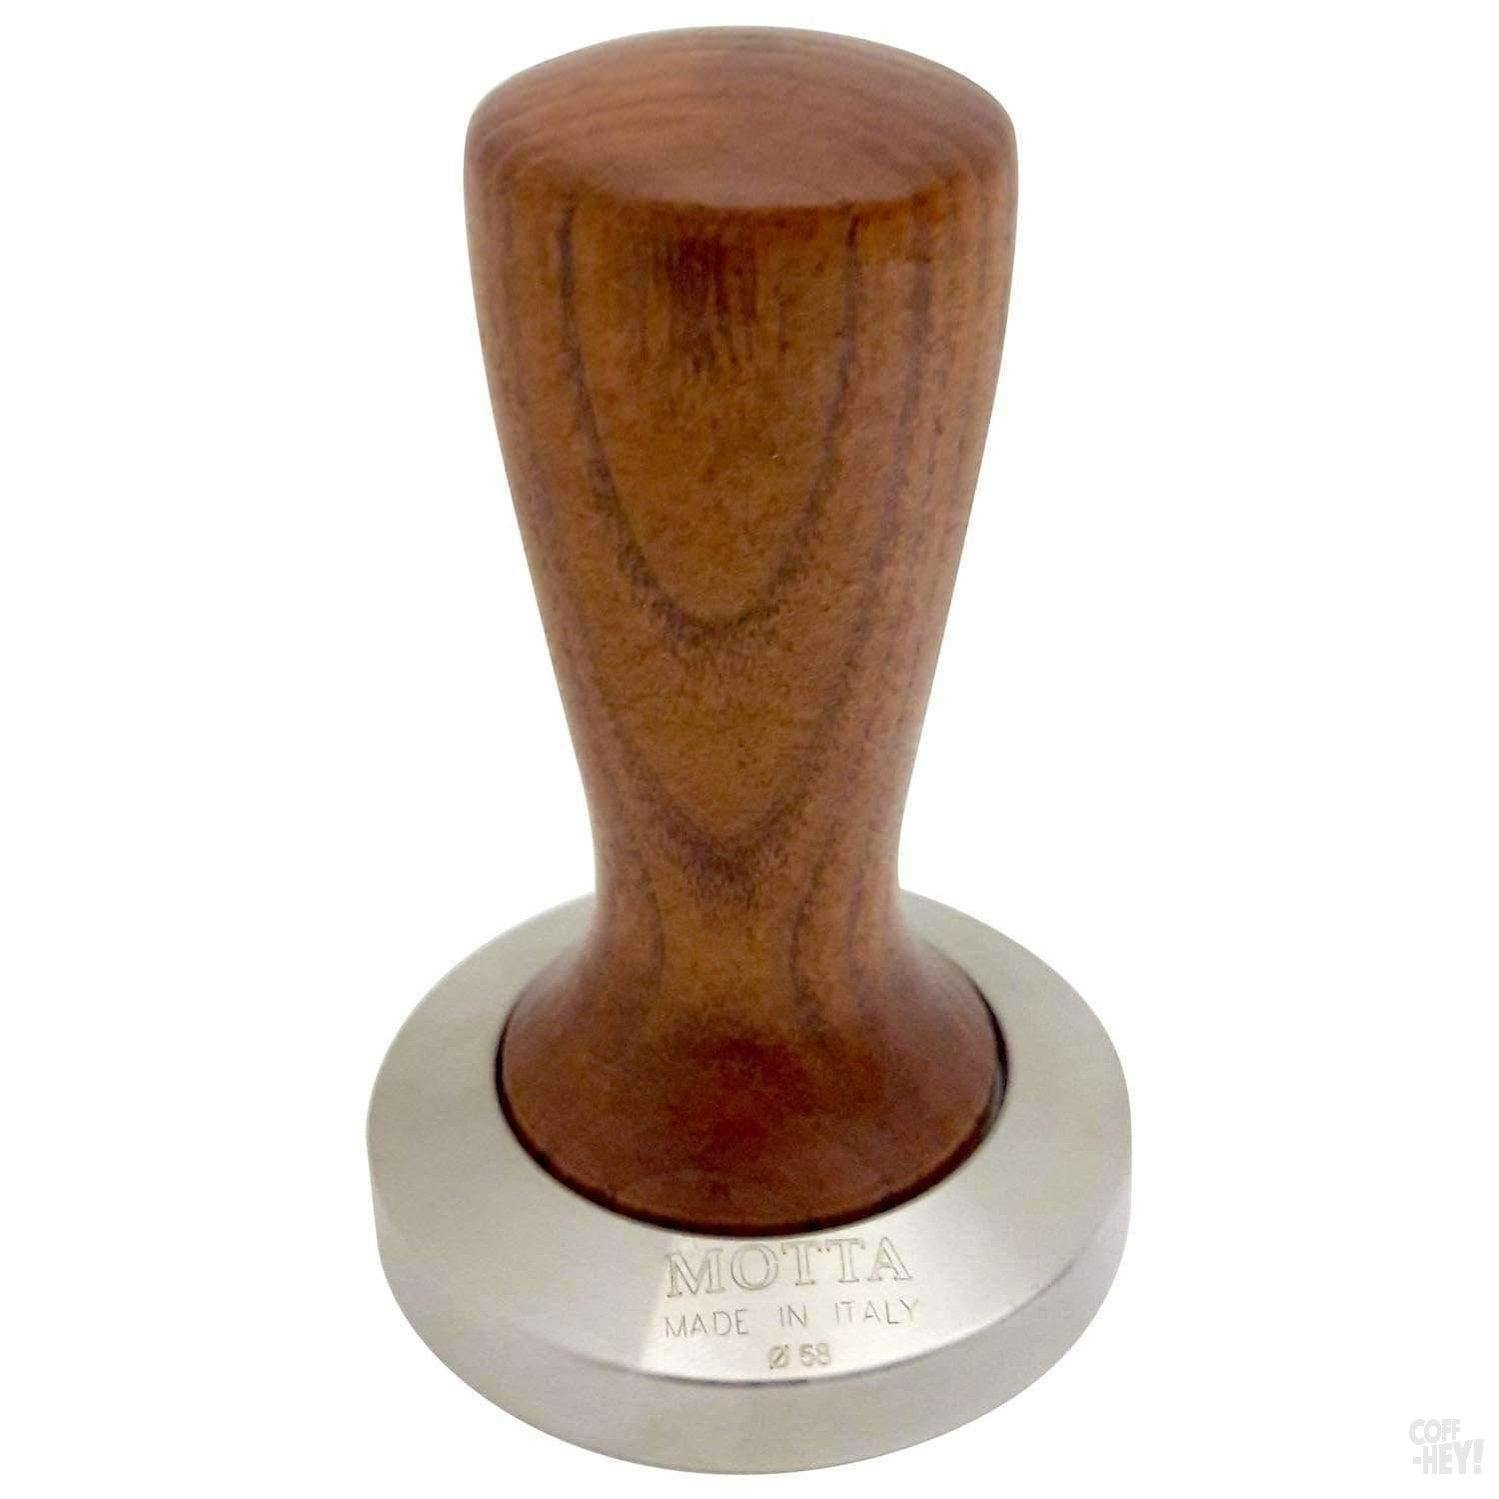 Motta Tamper Slim Base 58mm Wood Handle-Espresso/Barista-Motta-Coff-Hey!